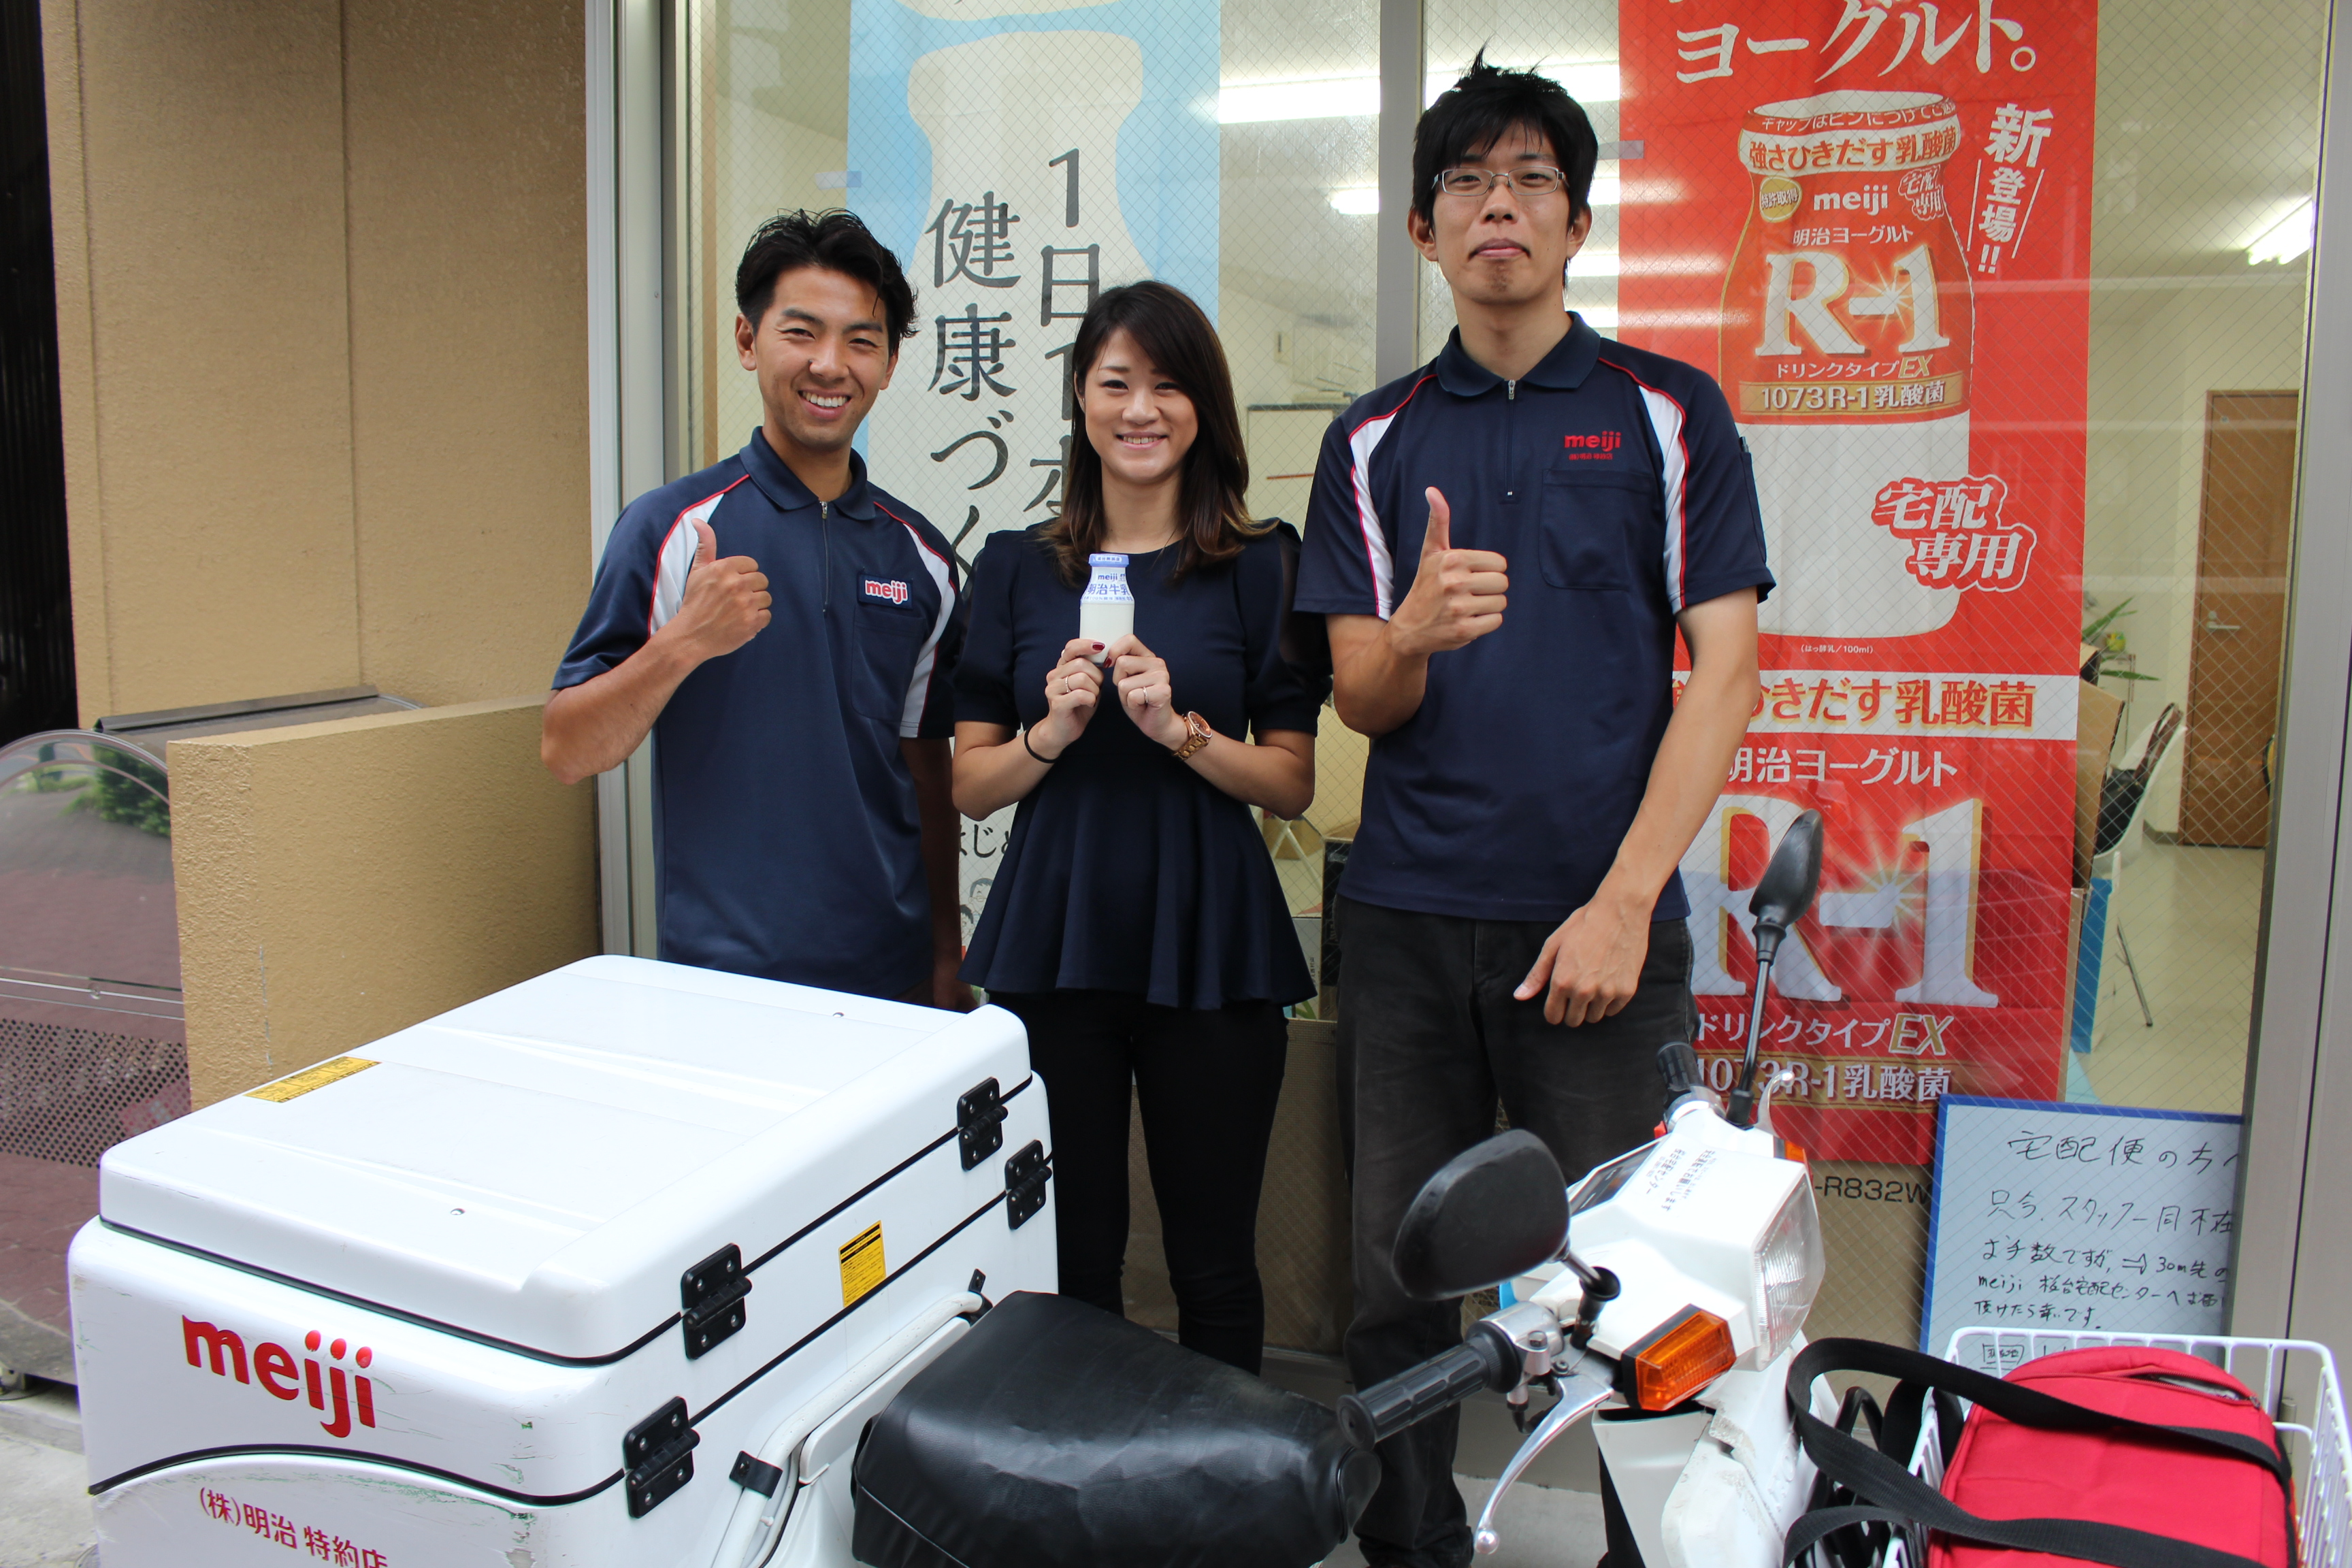 Morning Shift! Delivery Staff Needed in Nerima-ku for Healthy Way of Life Company!